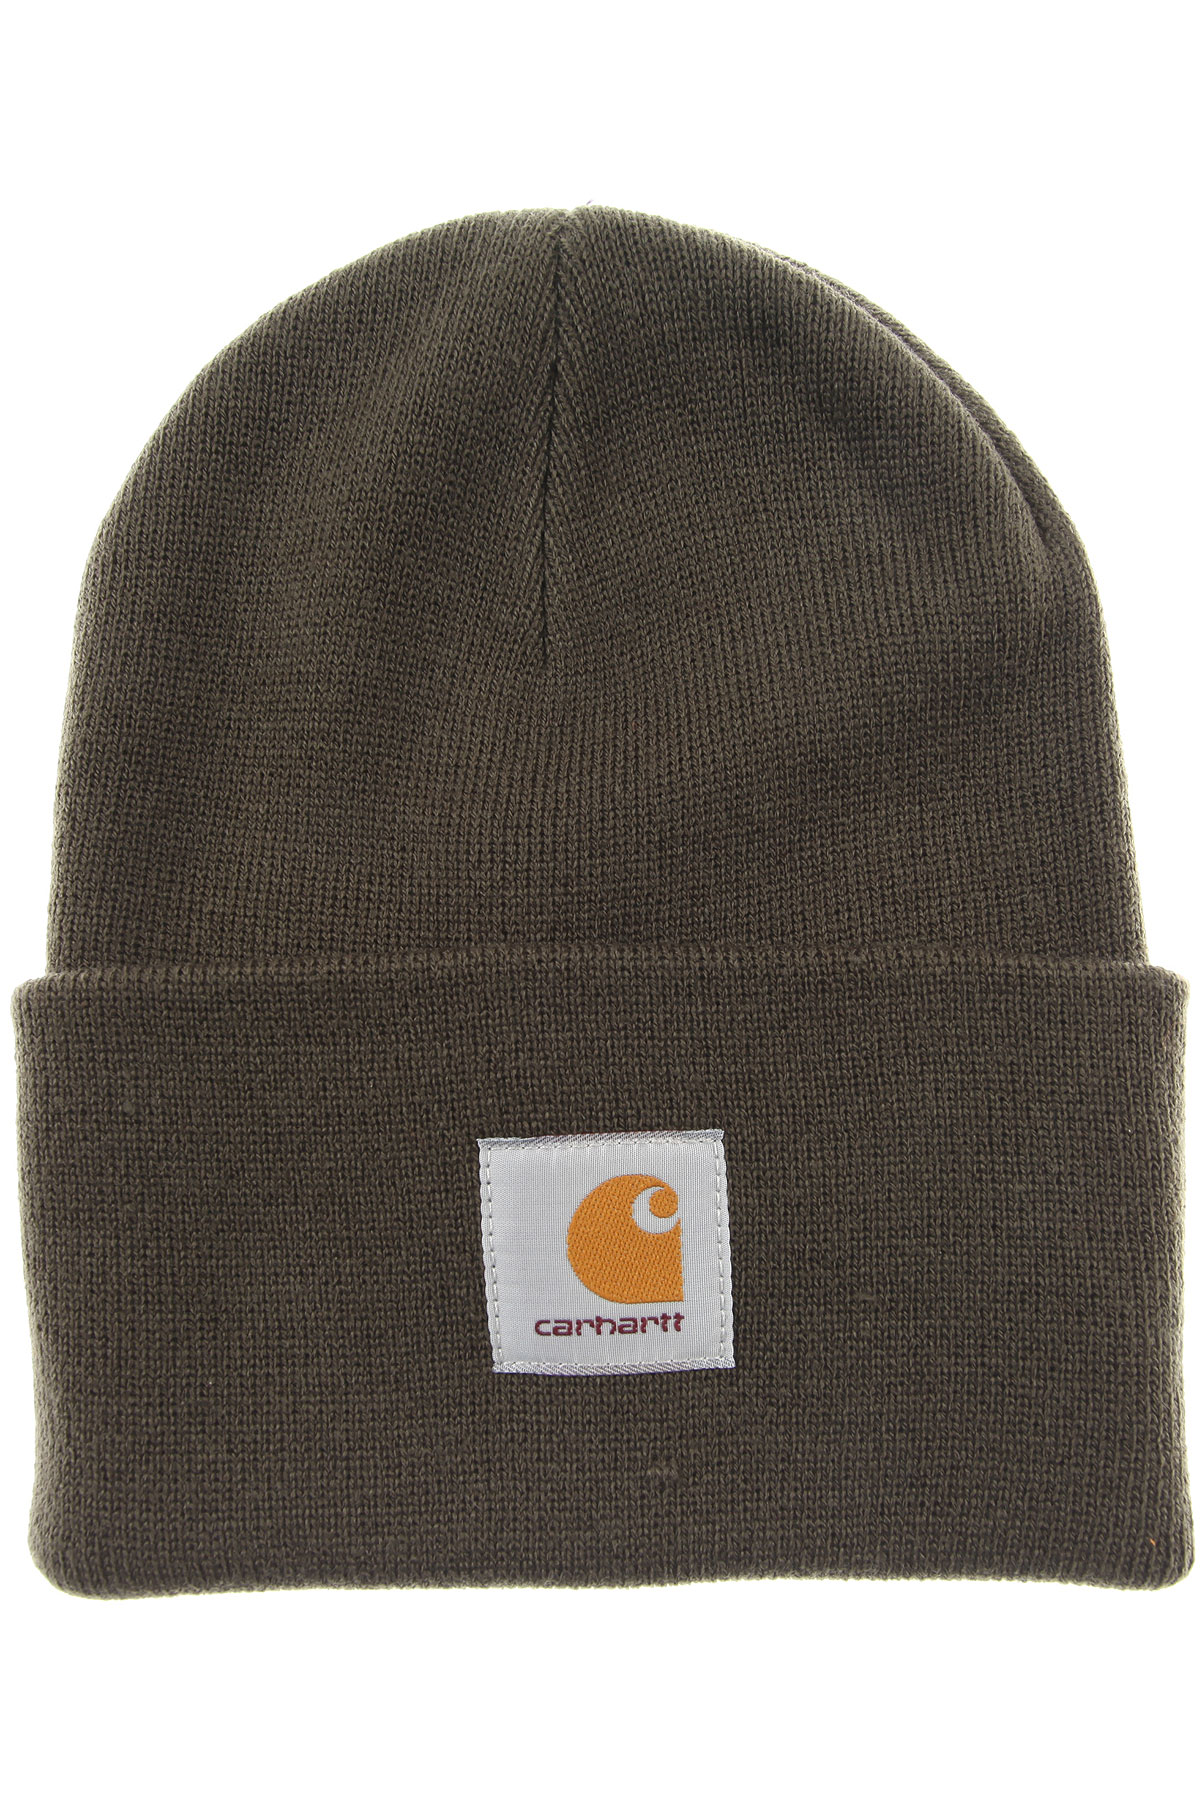 Image of Carhartt Hat for Women, Cypress Green, Acrylic, 2017